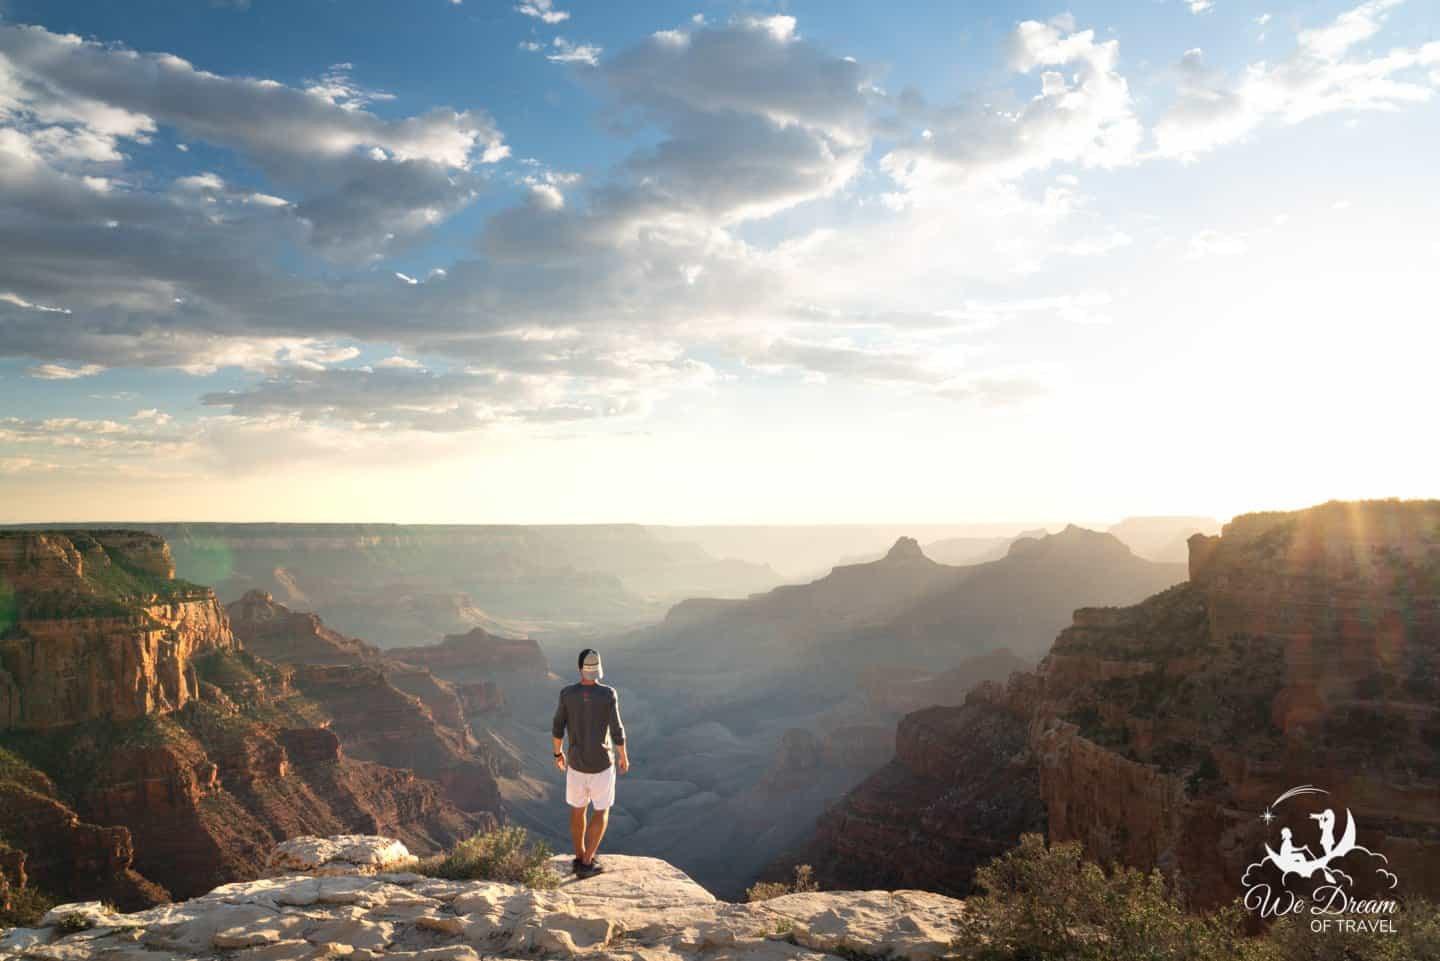 Using the tripod for a self-portrait on the rim of the Grand Canyon.